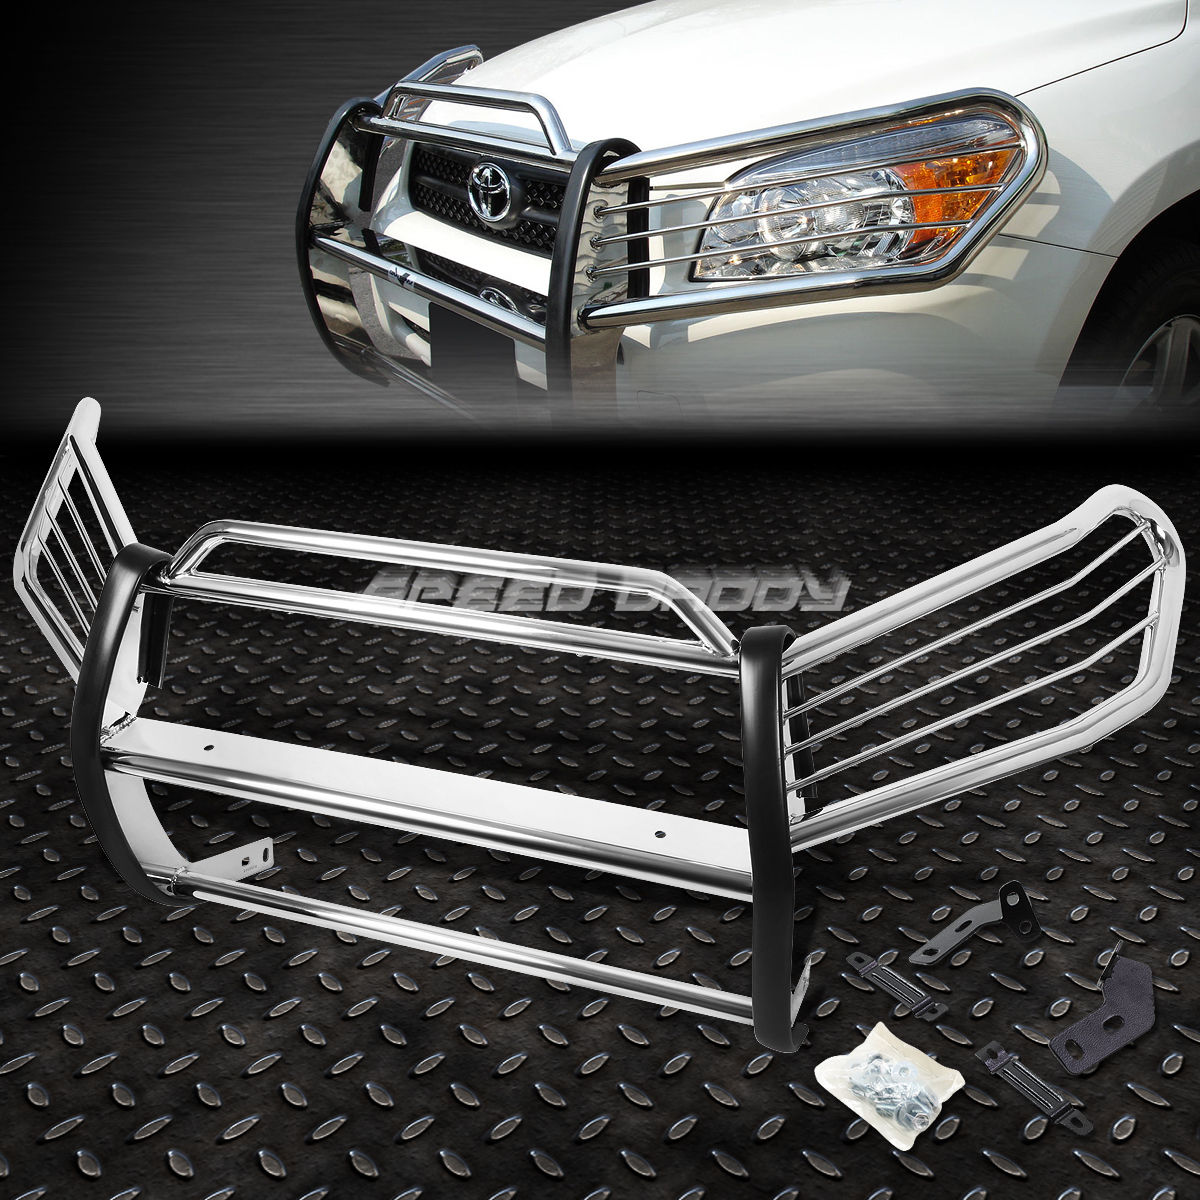 グリル クロームステンレスフロントグリルガード炎96-00 TOYOTA RAV4 XA30 SUV用 CHROME STAINLESS STEEL FRONT GRILL GUARD FLAME FOR 96-00 TOYOTA RAV4 XA30 SUV